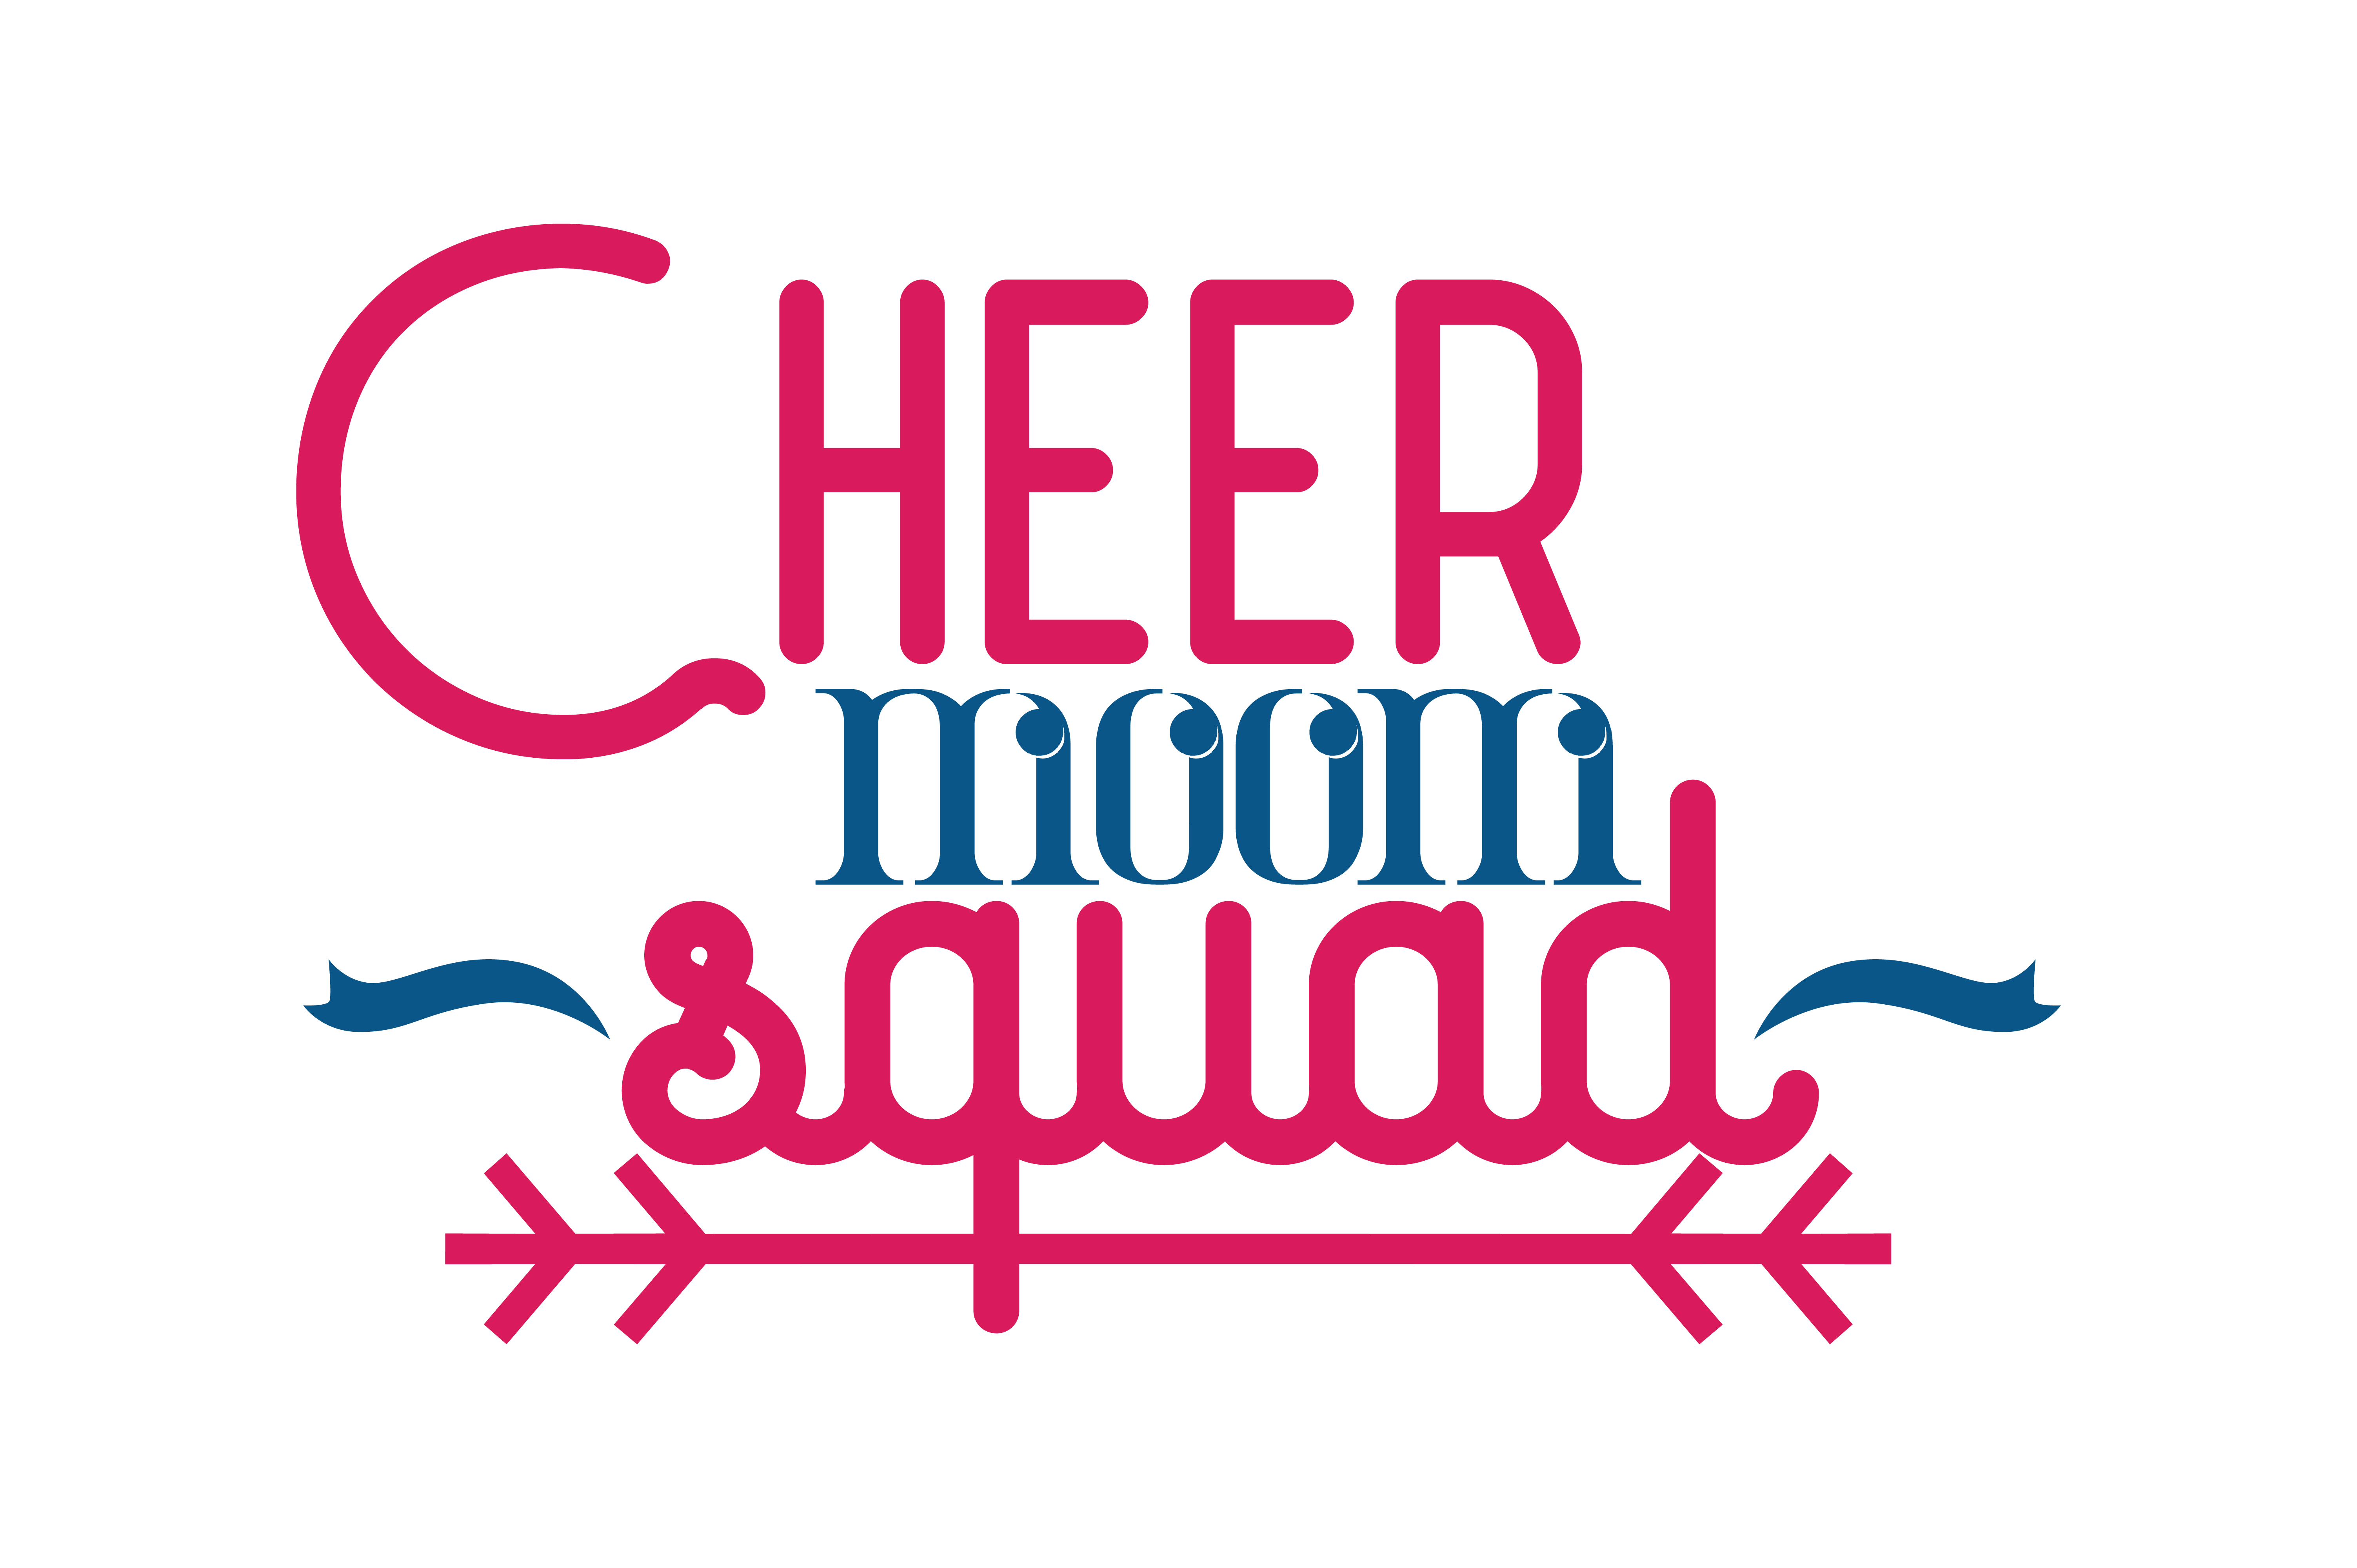 Download Free Cheer Moom Squad Quote Svg Cut Graphic By Thelucky Creative for Cricut Explore, Silhouette and other cutting machines.